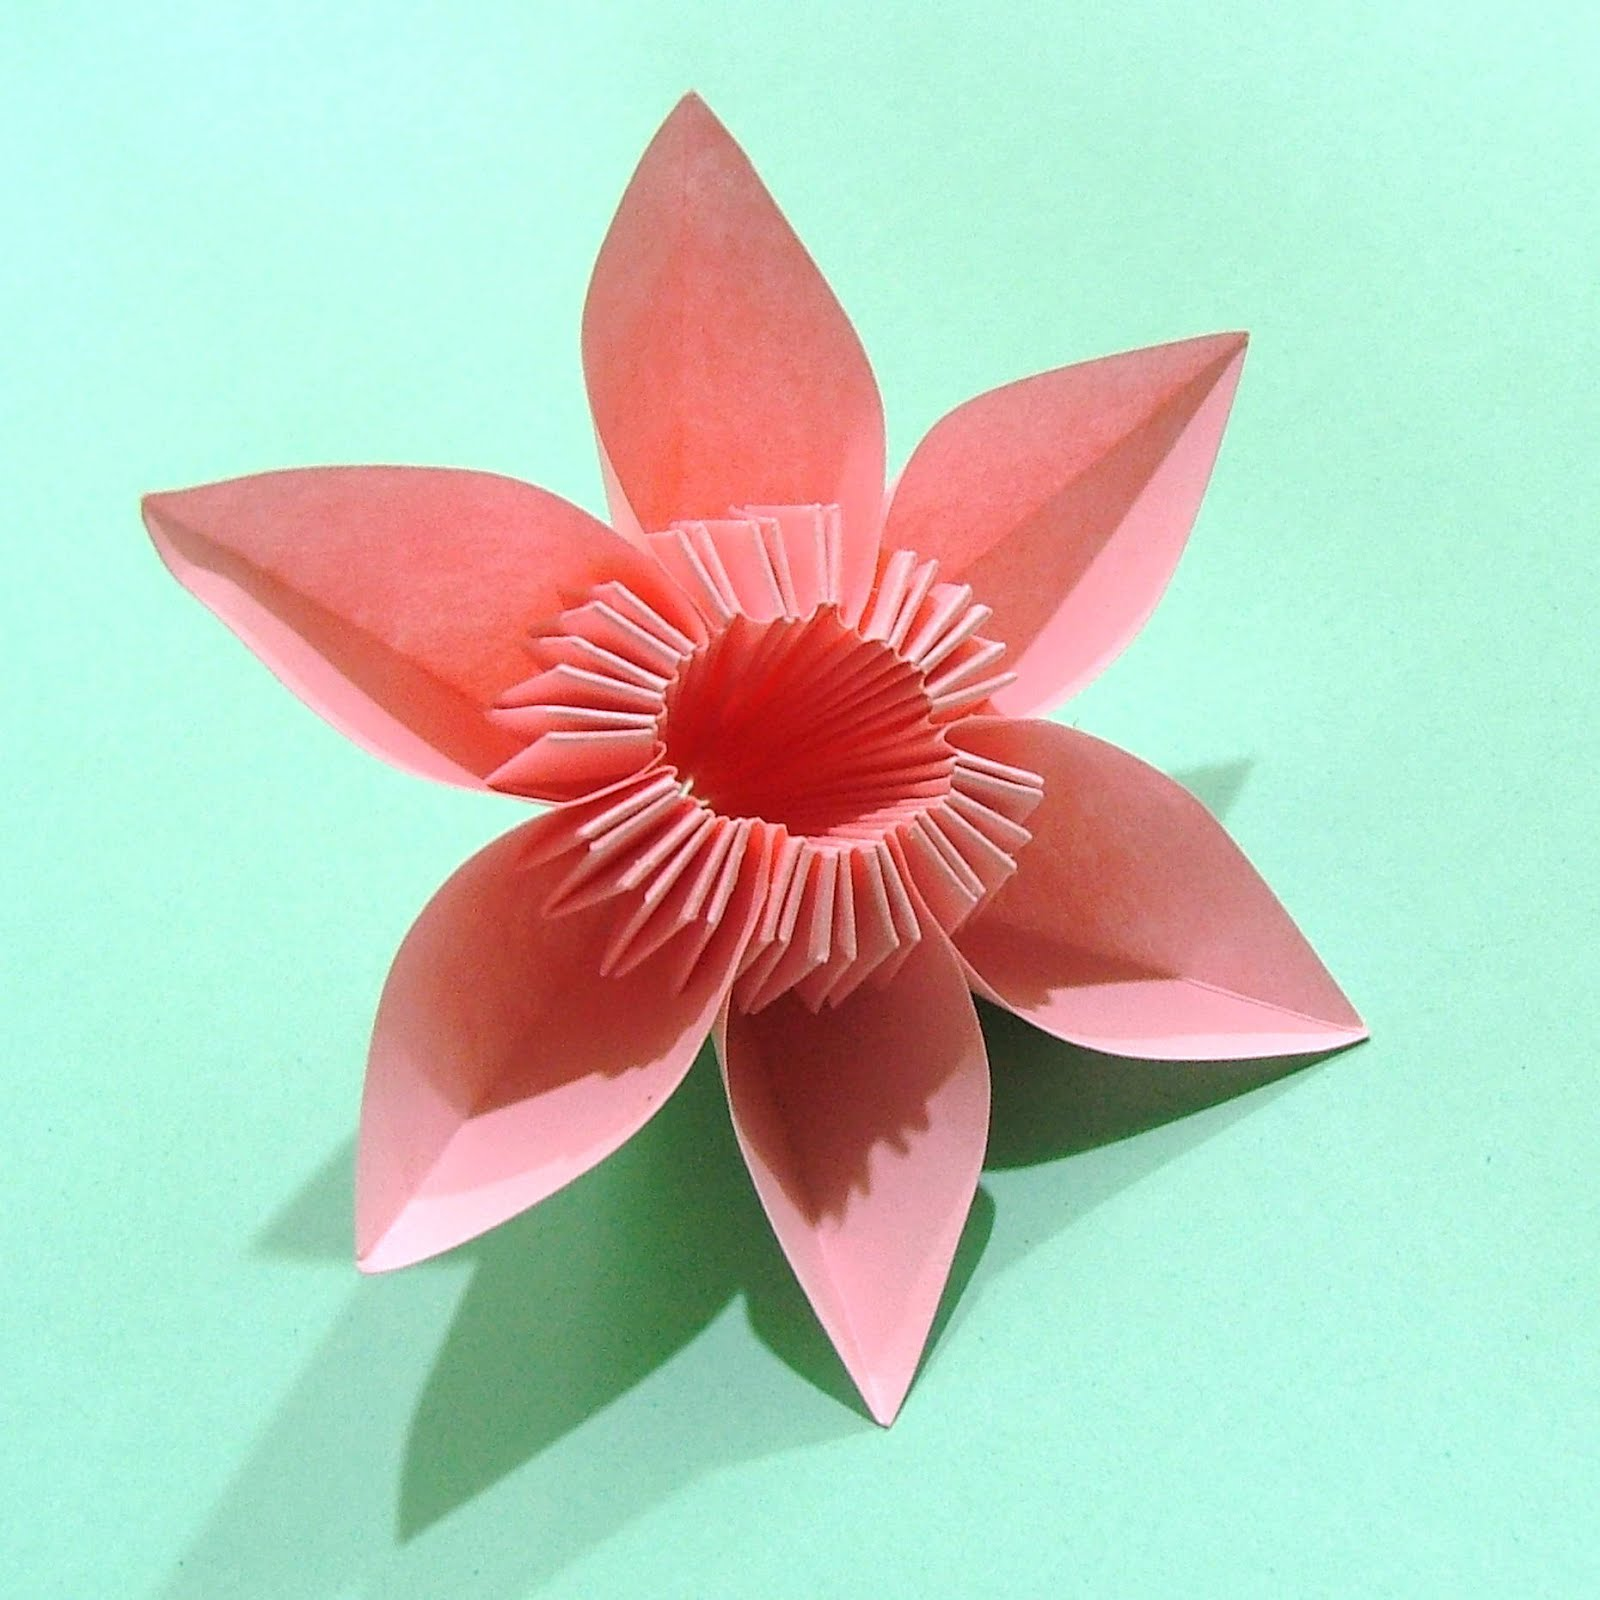 How To Make Origami Flowers, Simple Origami Flower Design ... - photo#18